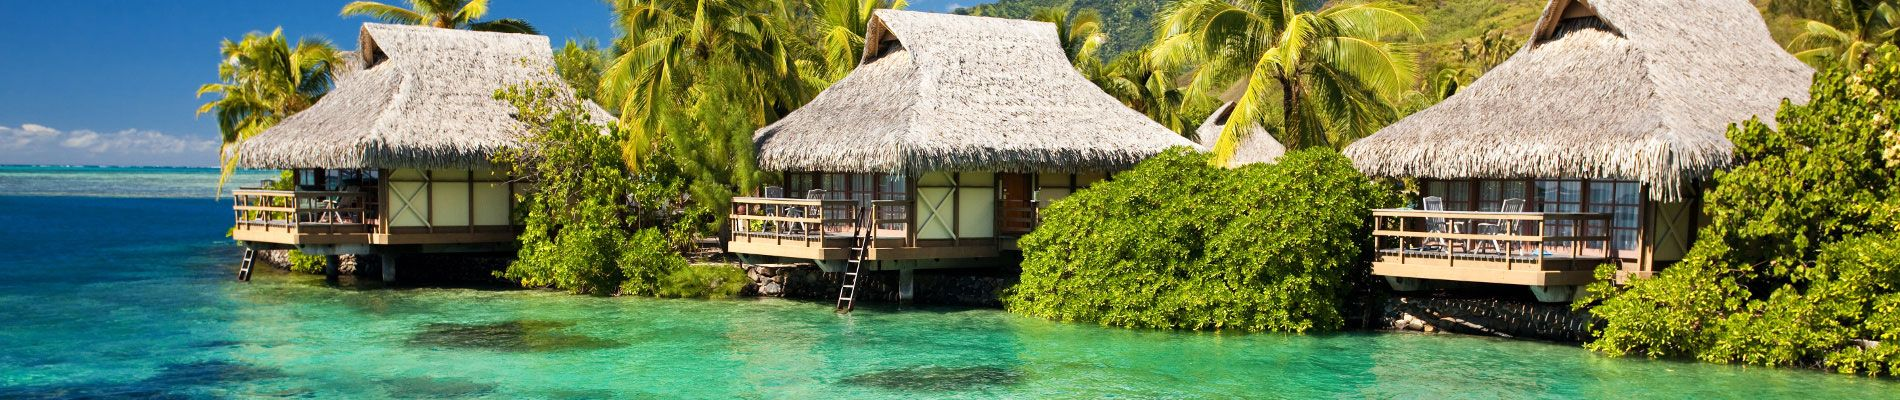 bungalow-lagon-paradisiaque-st